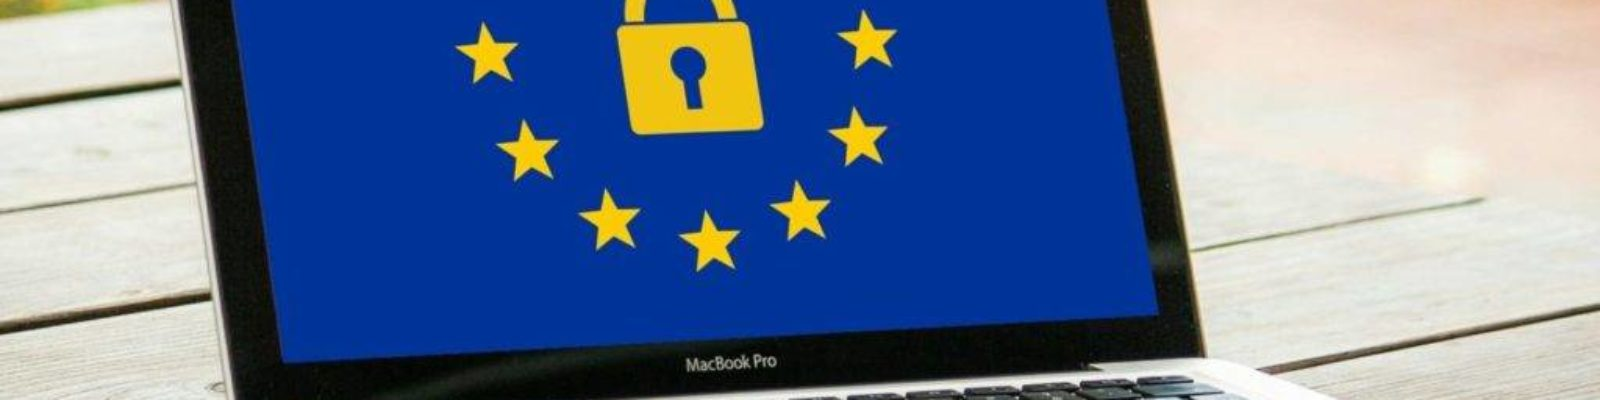 Looking back at data protection in 2020